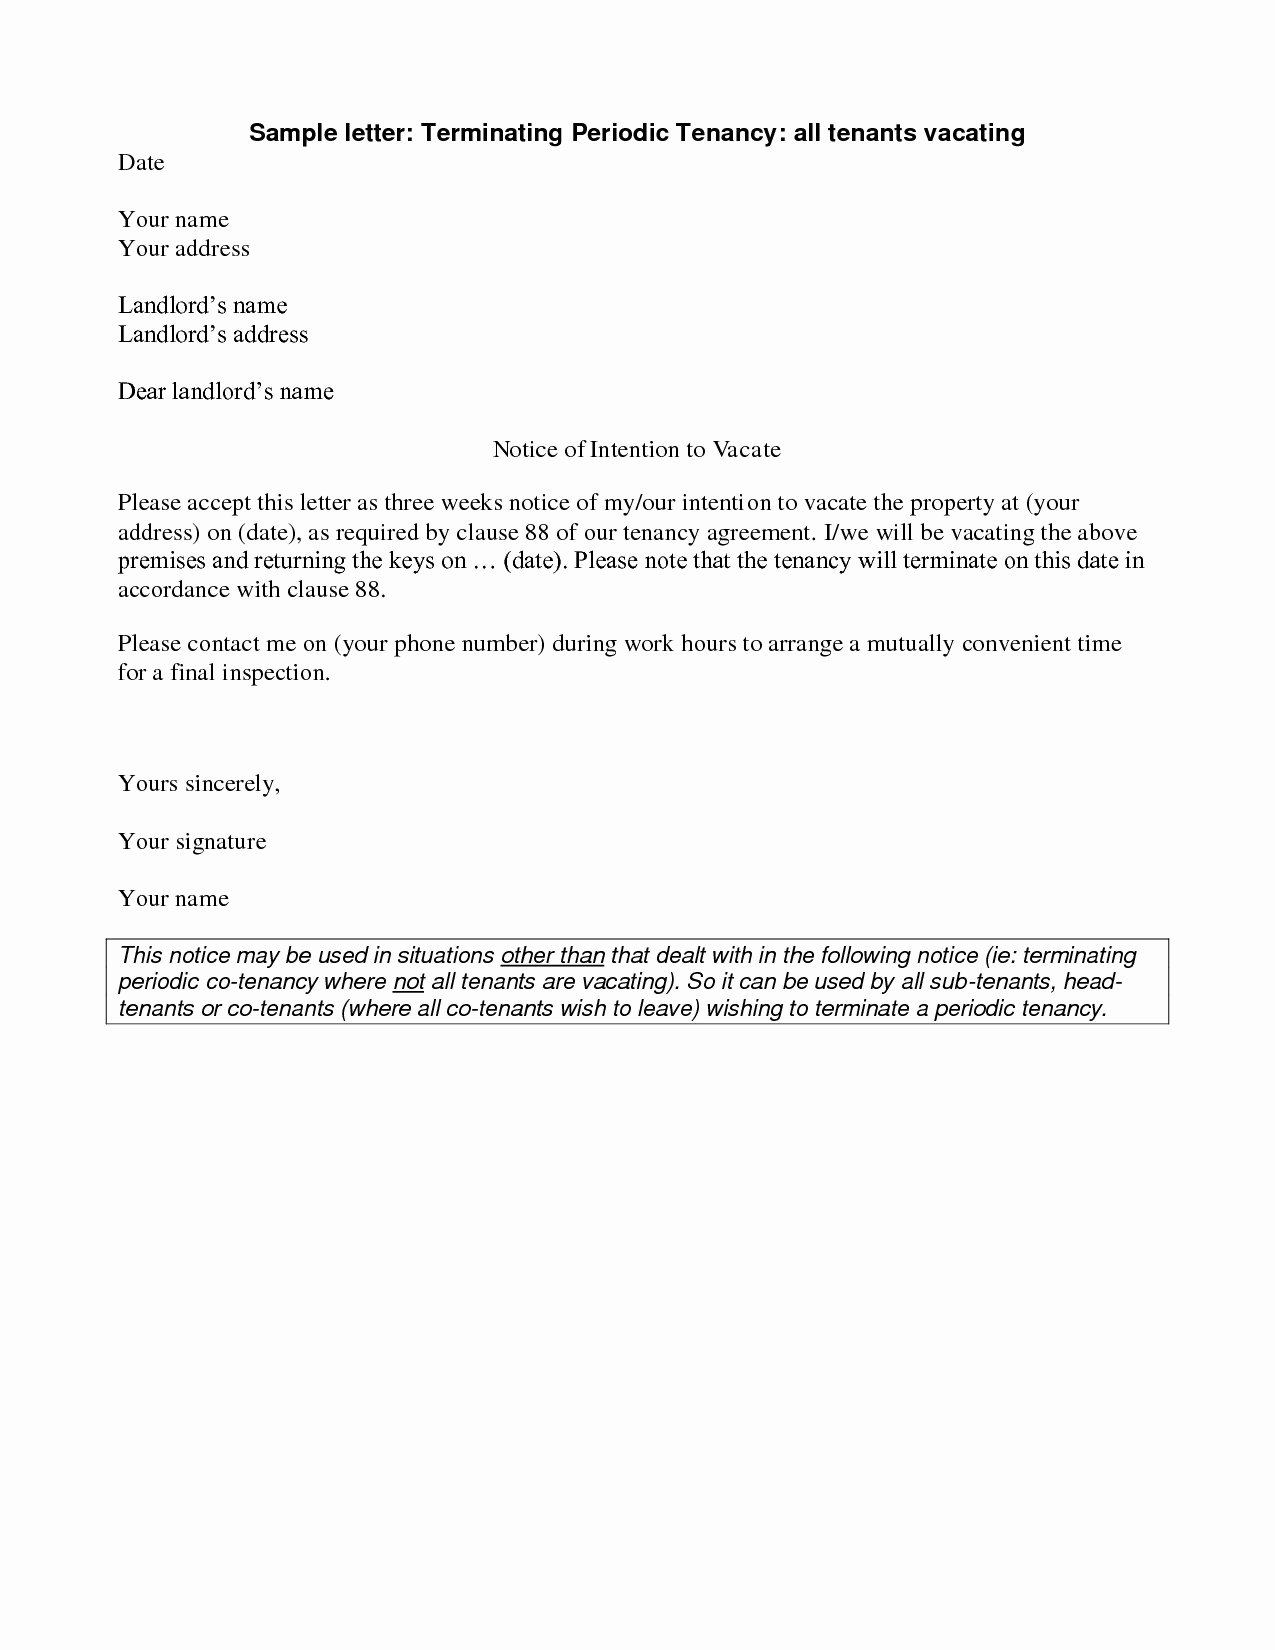 Notice to Vacate Apartment Letter Inspirational Notice to Vacate Apartment Letter Template Samples